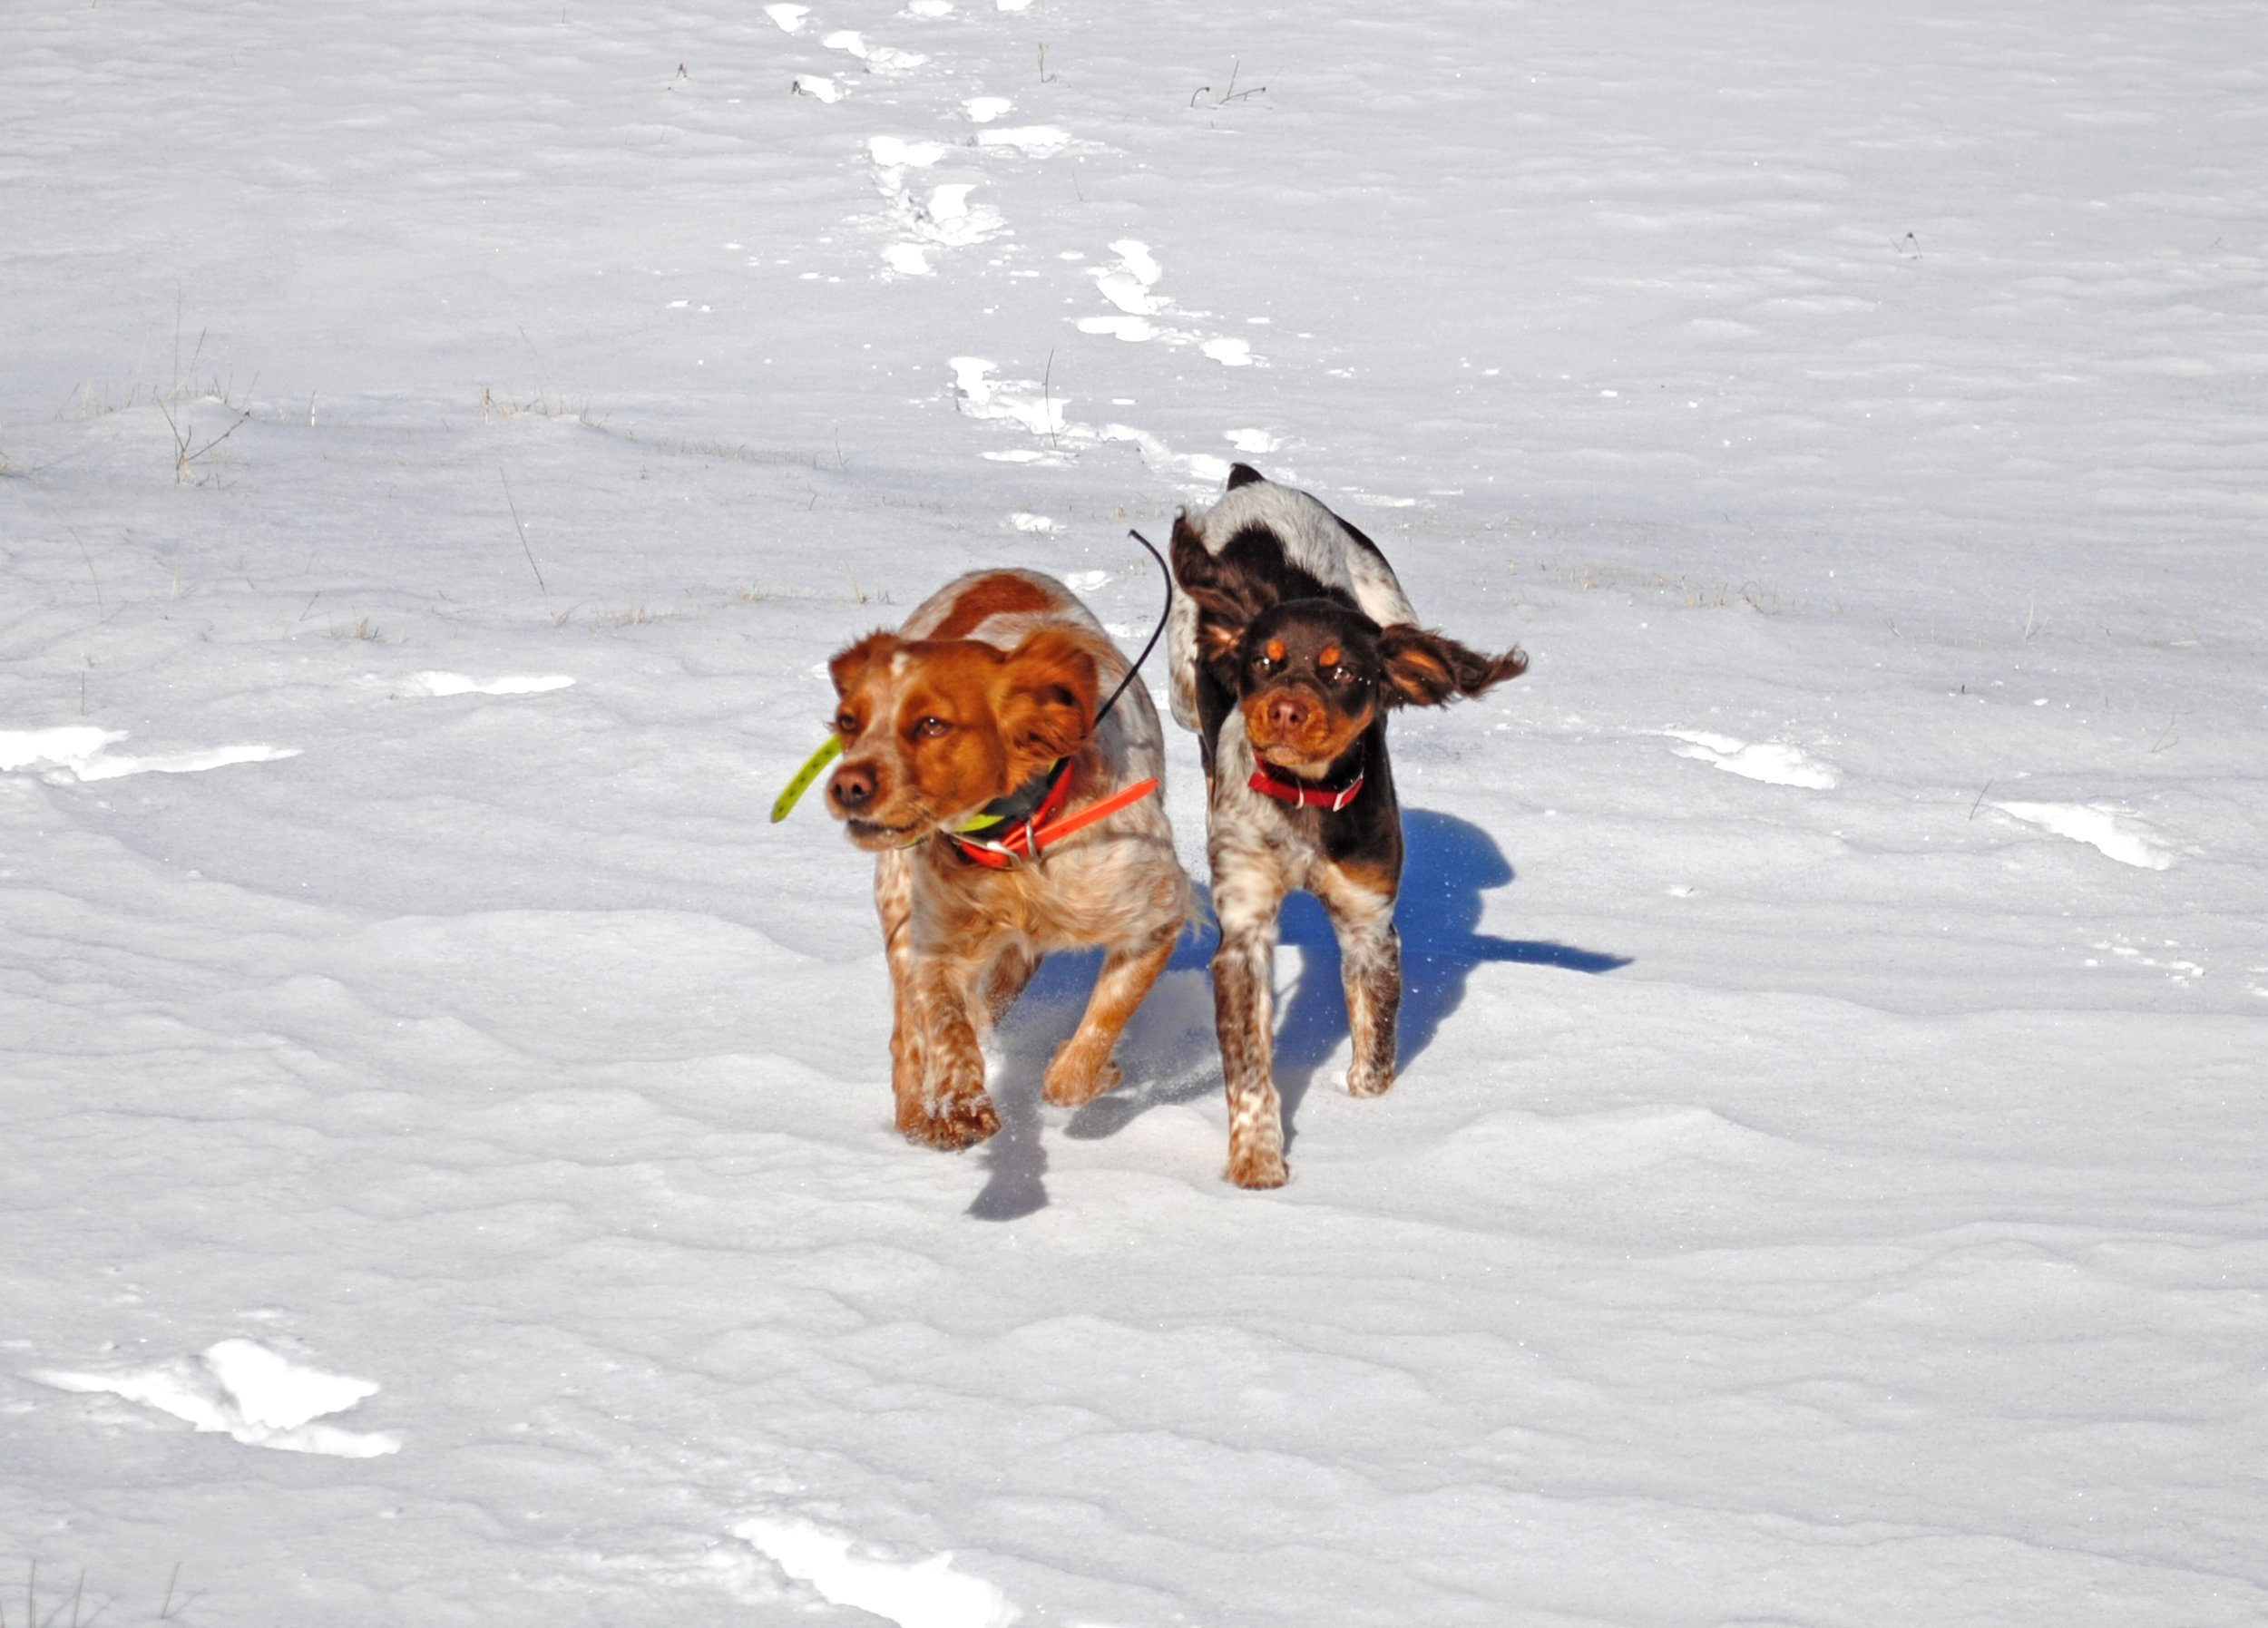 Skylar and Nova in the snow (photo credit: Justin Madron)